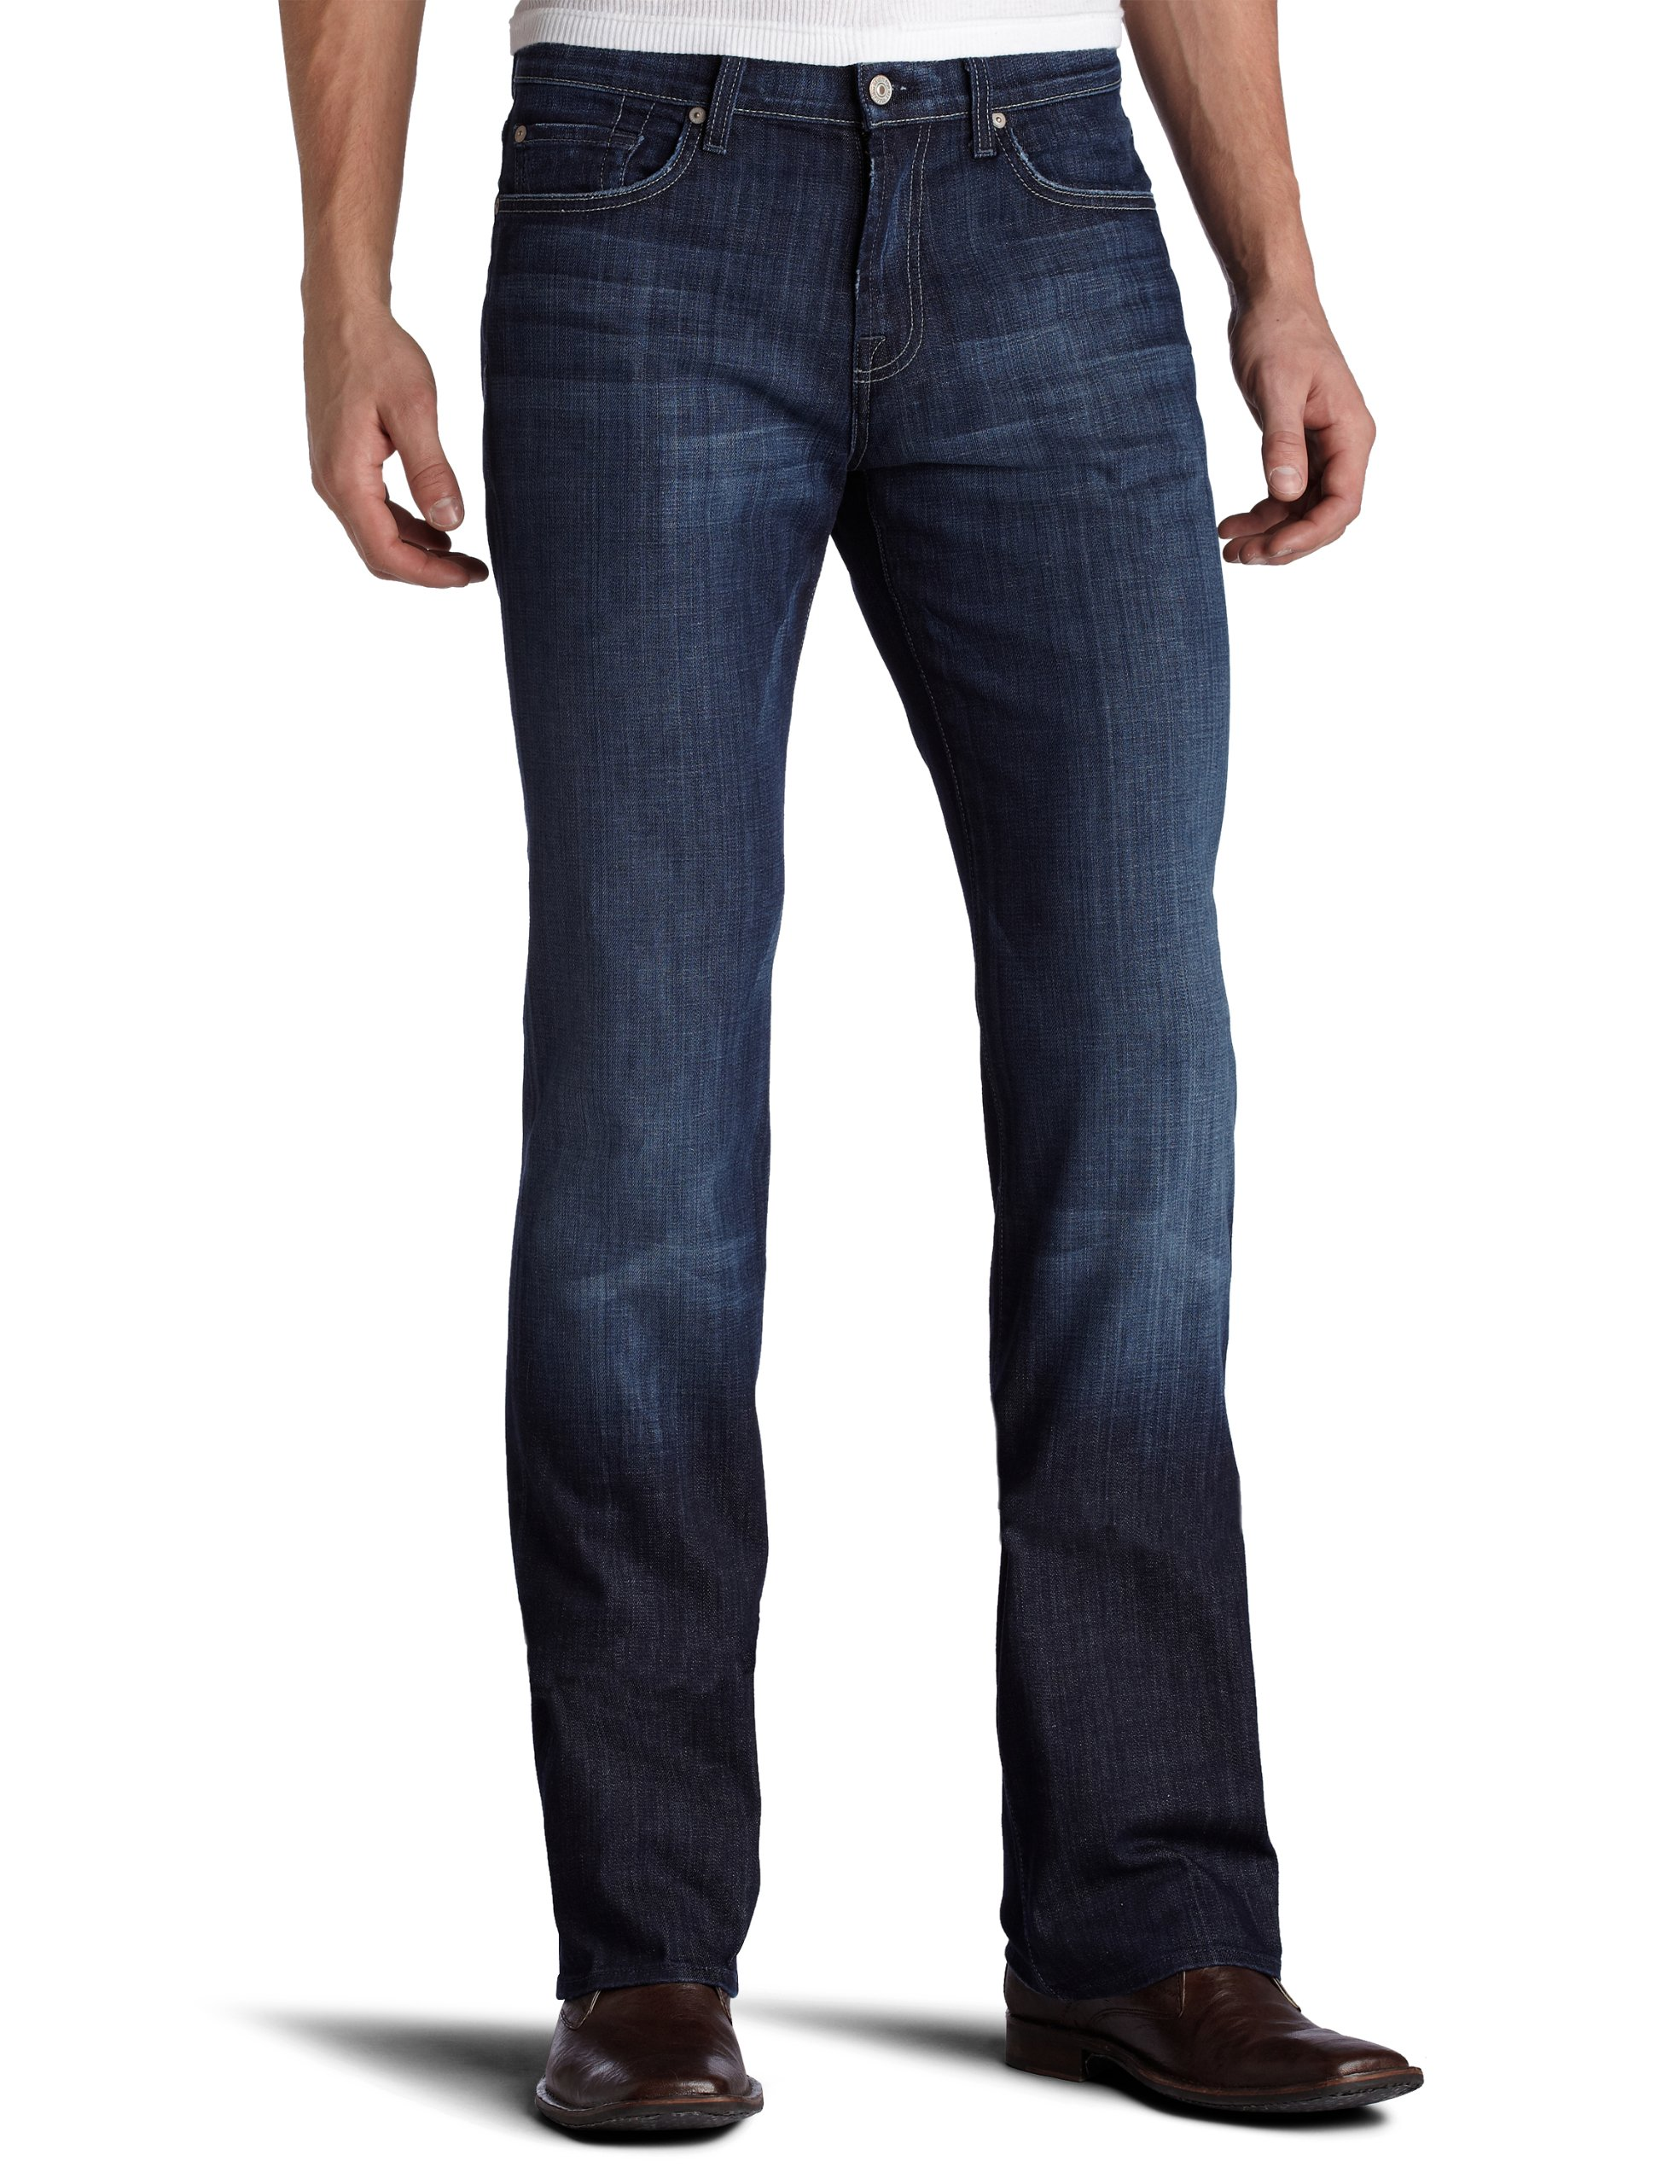 7 For All Mankind Mens Jeans Austyn Relaxed Fit Straight Leg Pant